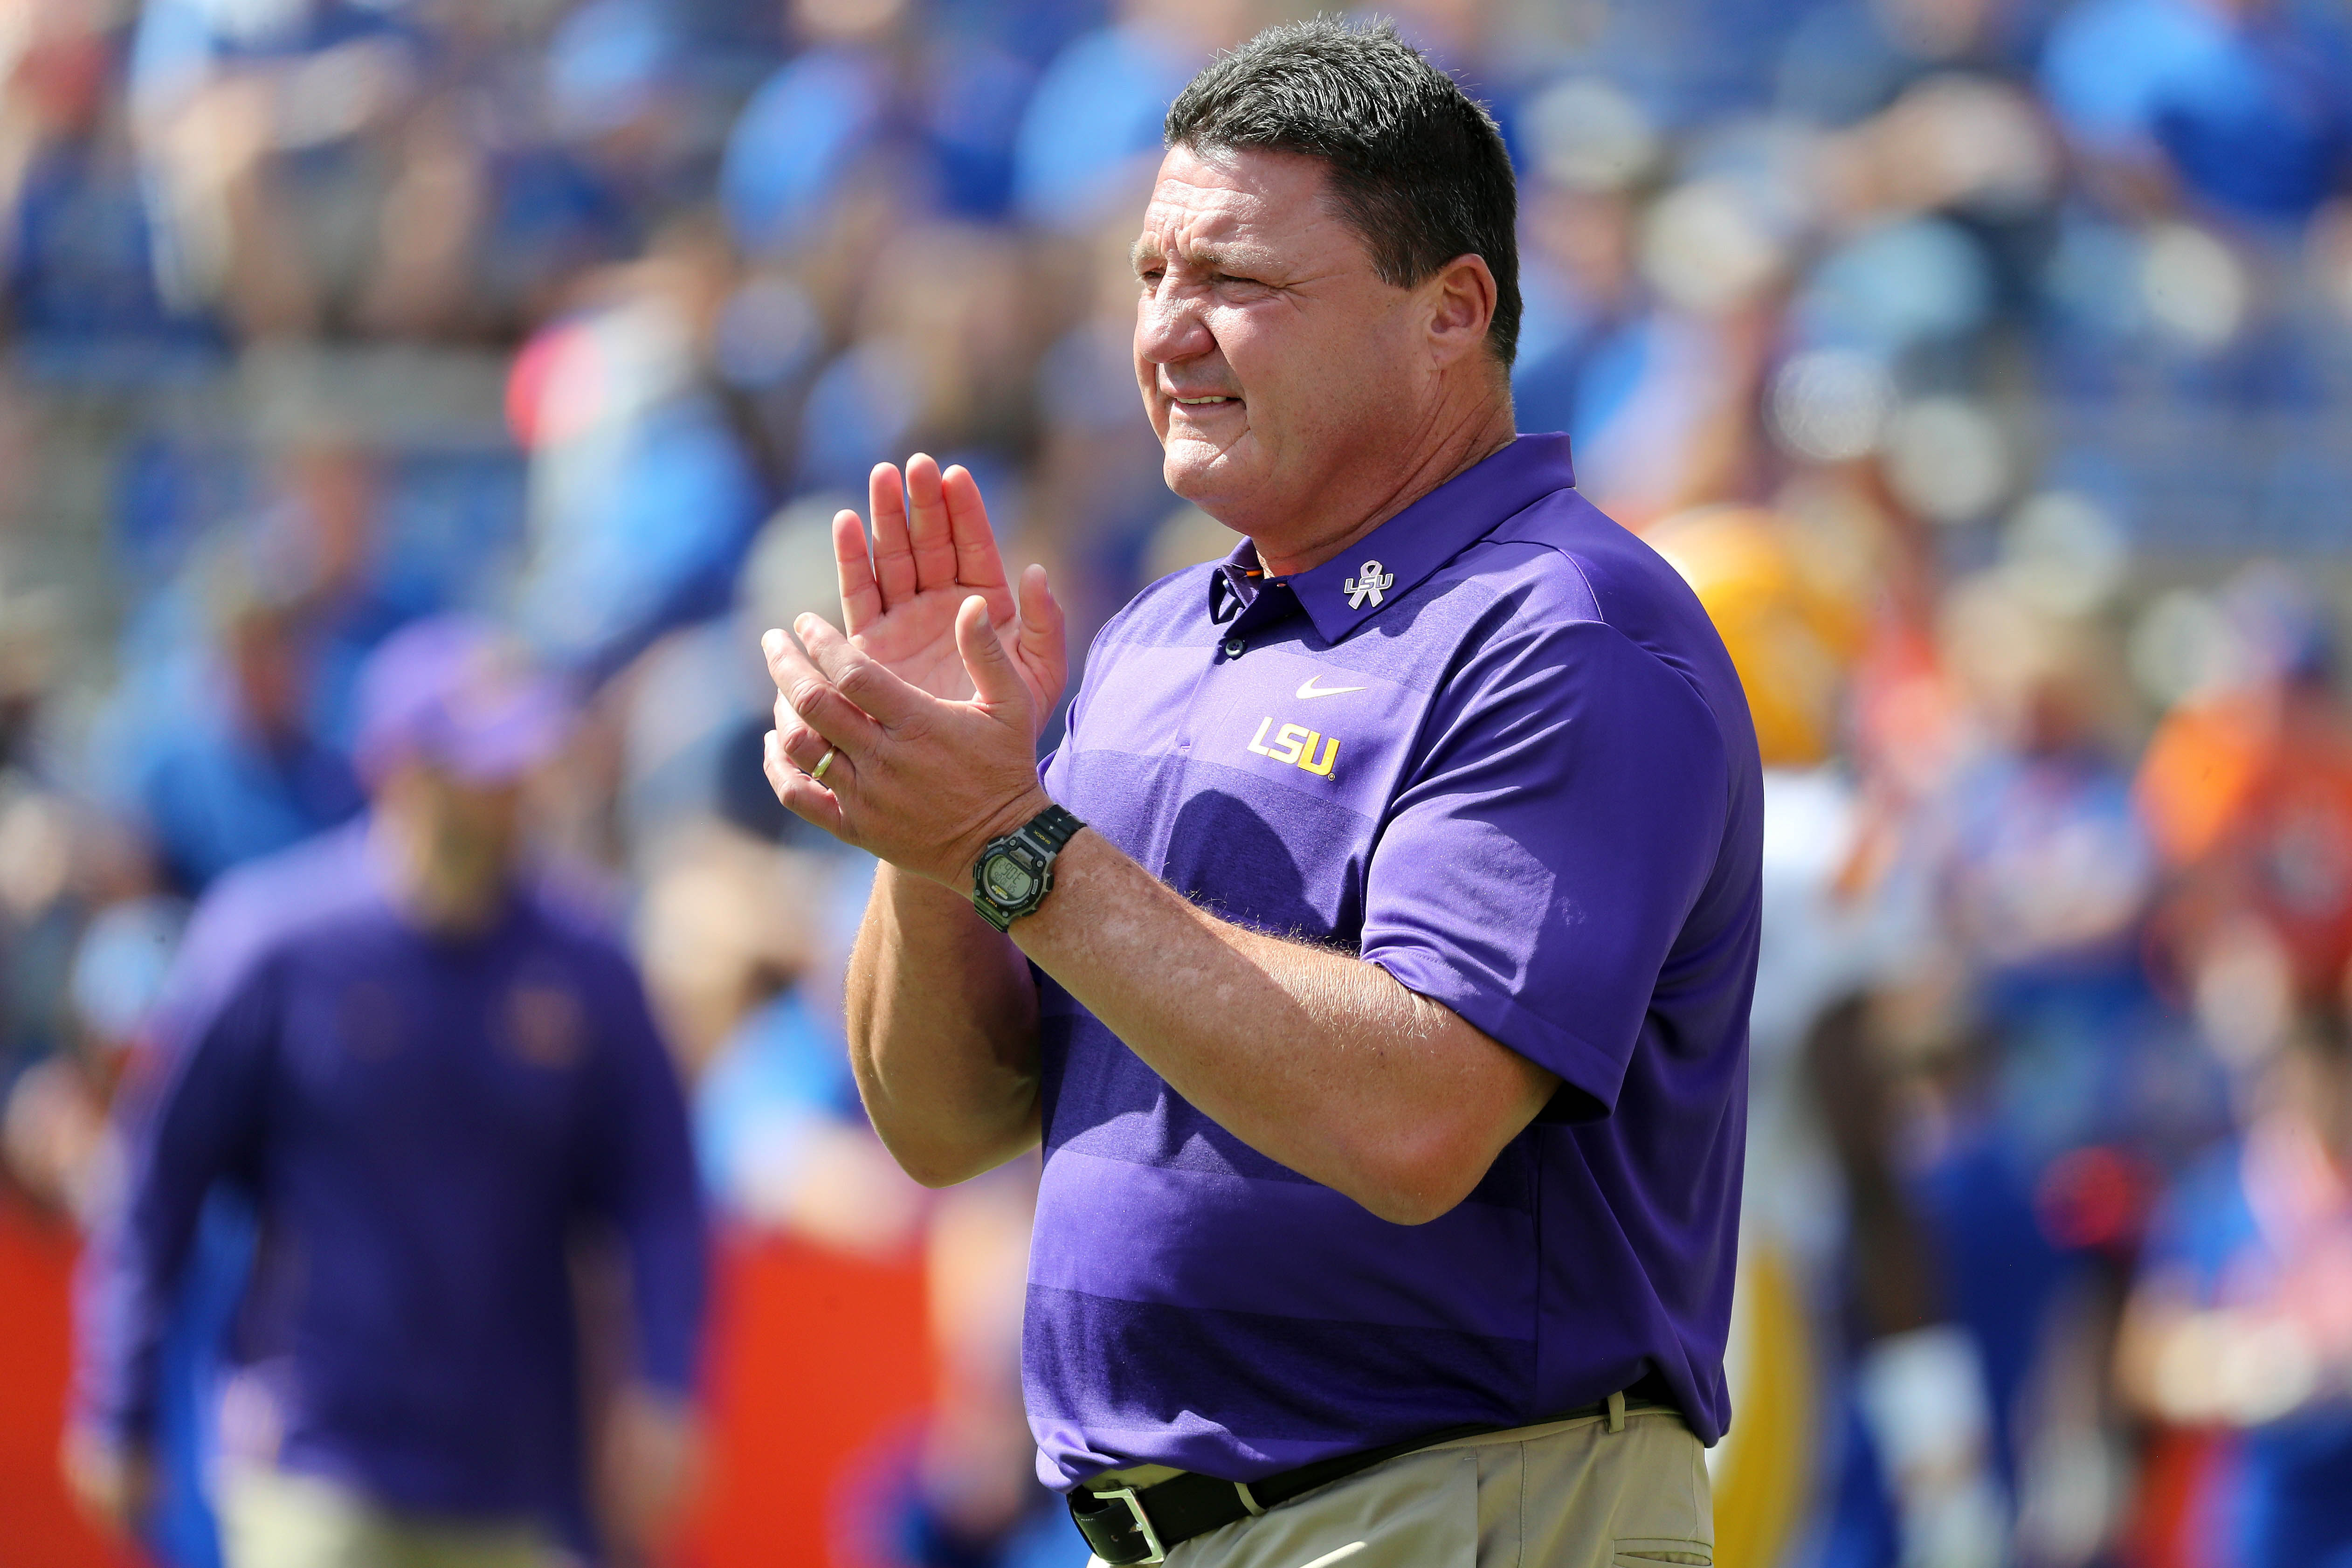 LSU lands commitment from 2020 QB, nephew of former SEC coach